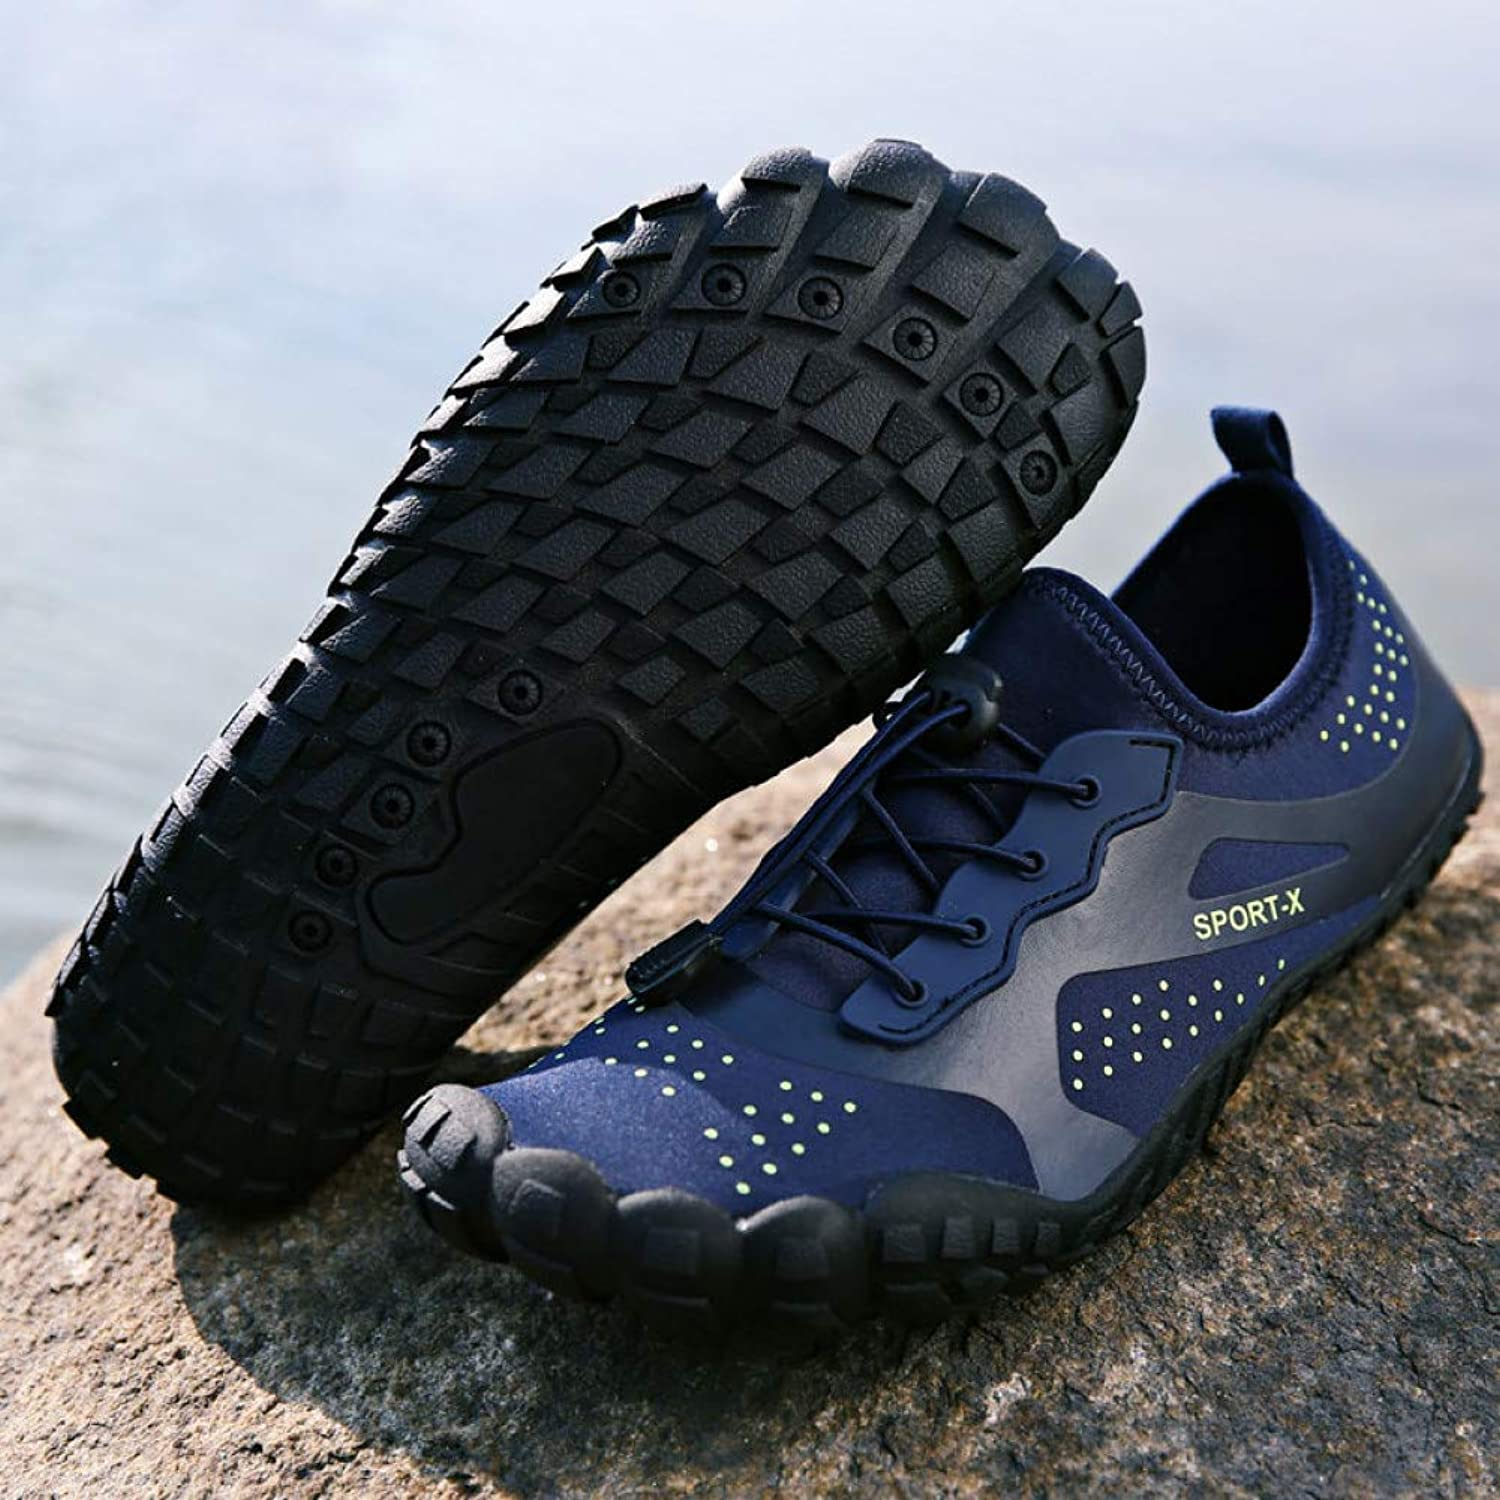 XLGJSX Water shoes Mens Slippers For Swimming shoes For Water Diving Aqua Diving Summer Aqua Beach Skin shoes Sneaker For Sea For Men